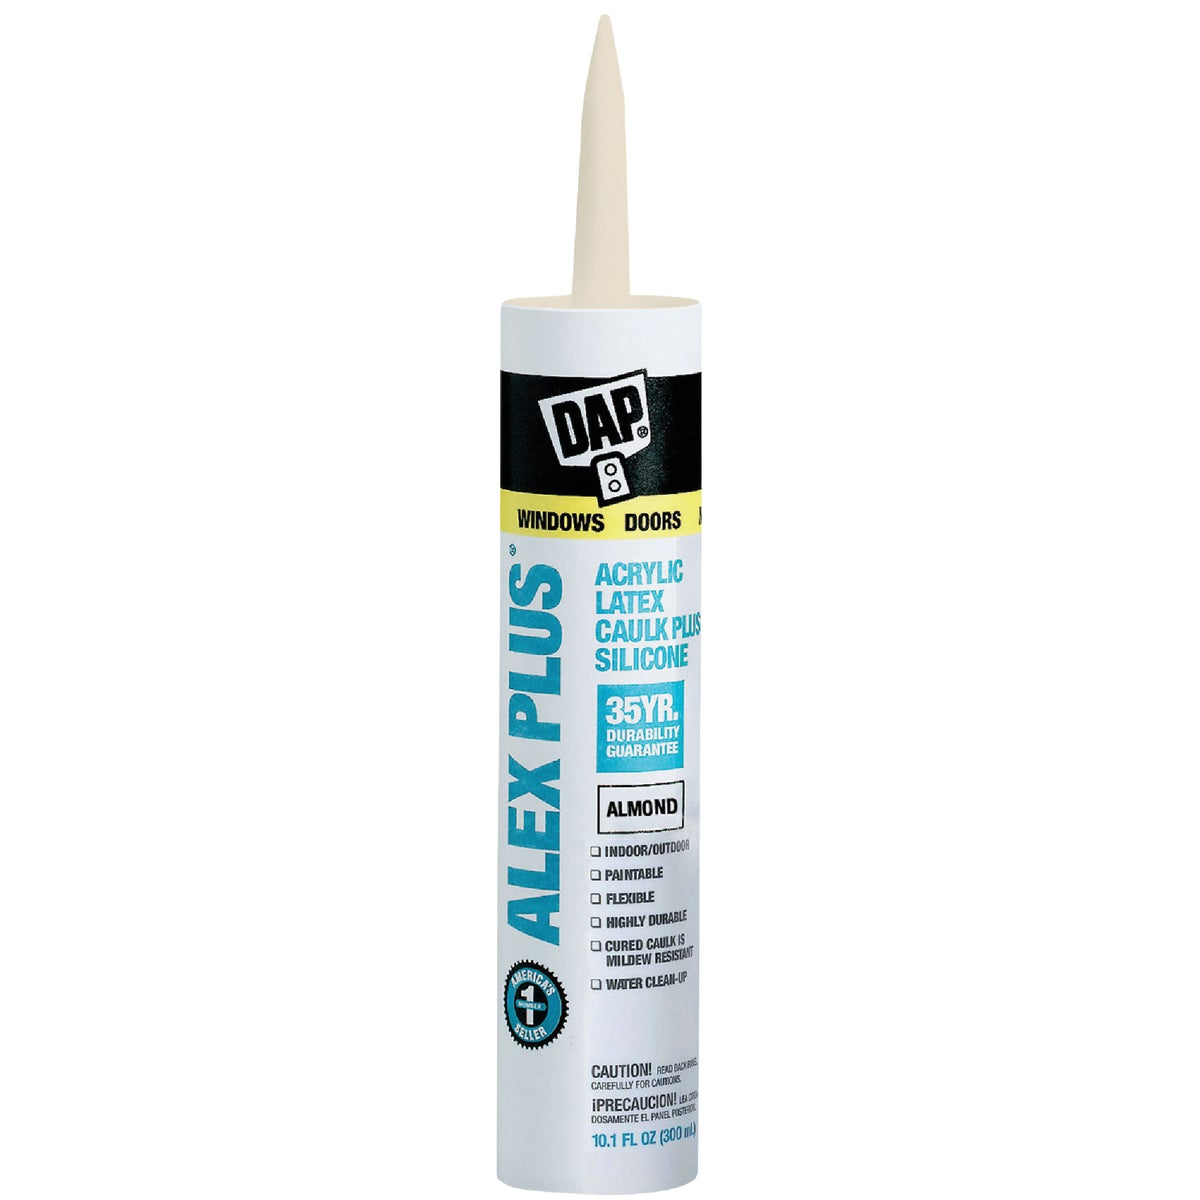 ALMOND ALEX PLUS CAULK - 18130 by Dap Inc